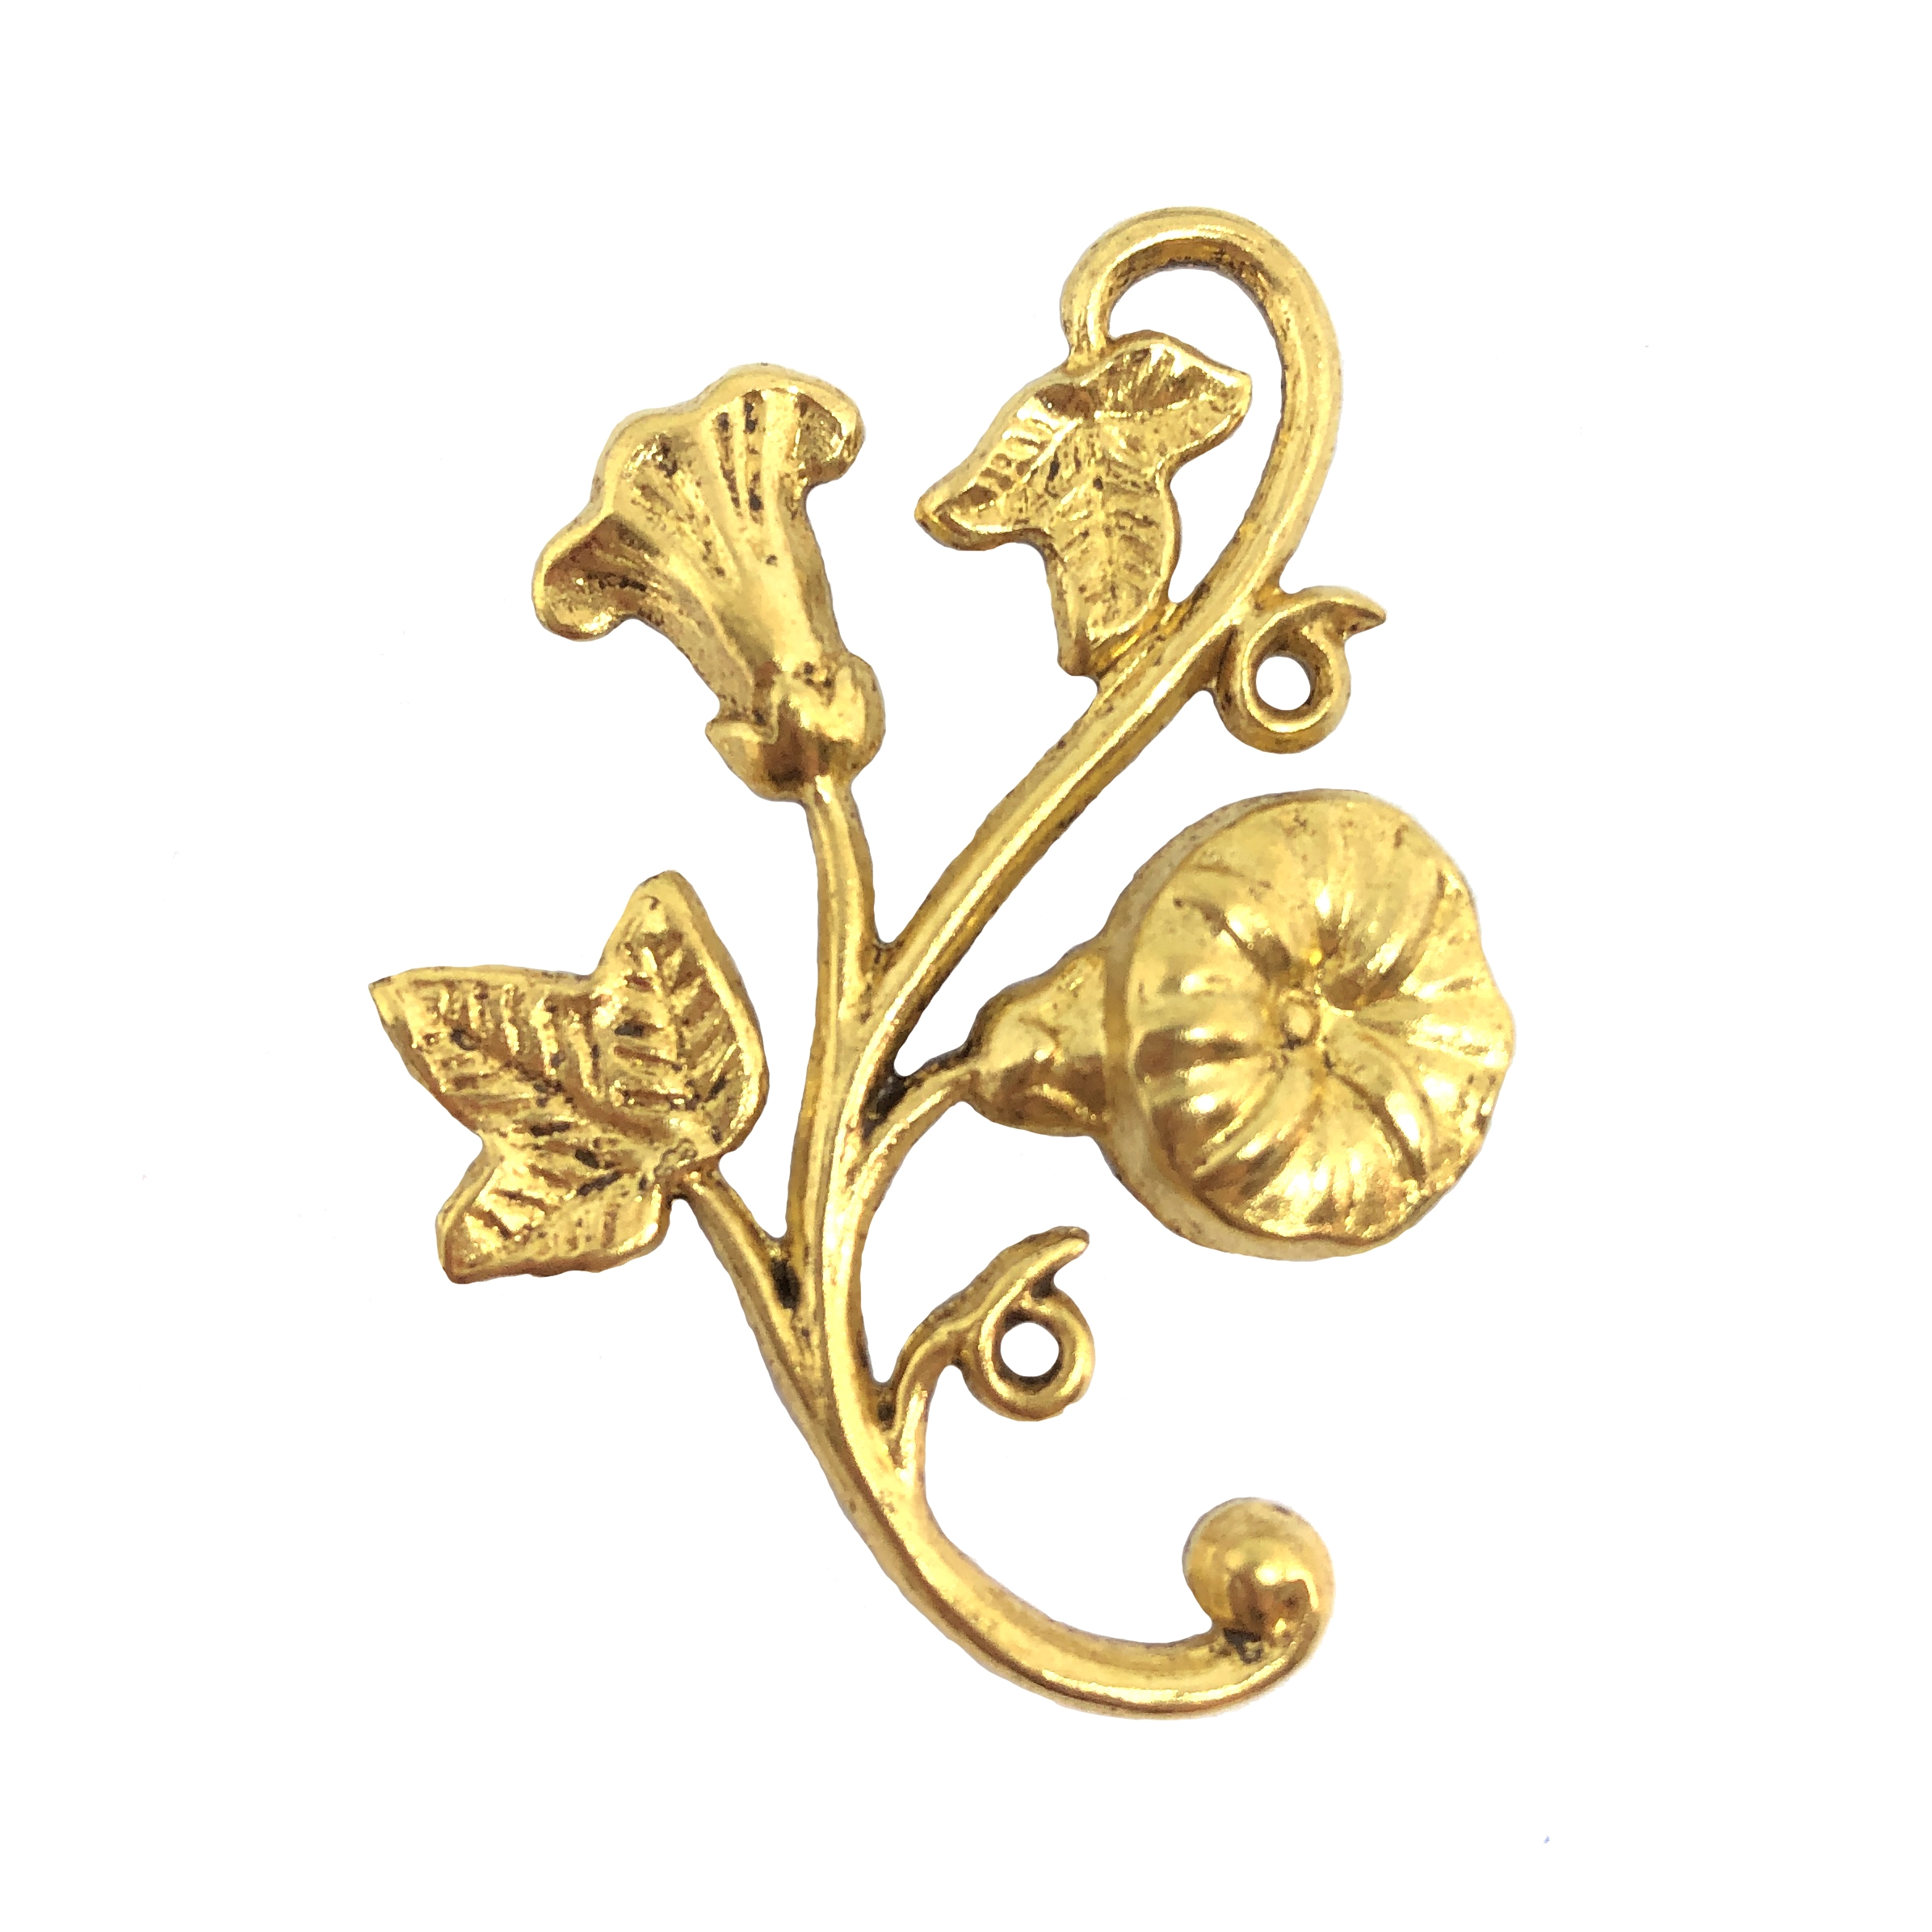 brass floral leaf sprig, floral stem, classic gold, 09748, jewelry making supplies, vintage jewelry supplies, brass flowers, brass leaves, US made, nickel free jewelry supplies, b'sue boutiques, plated brass, flowers, leaves